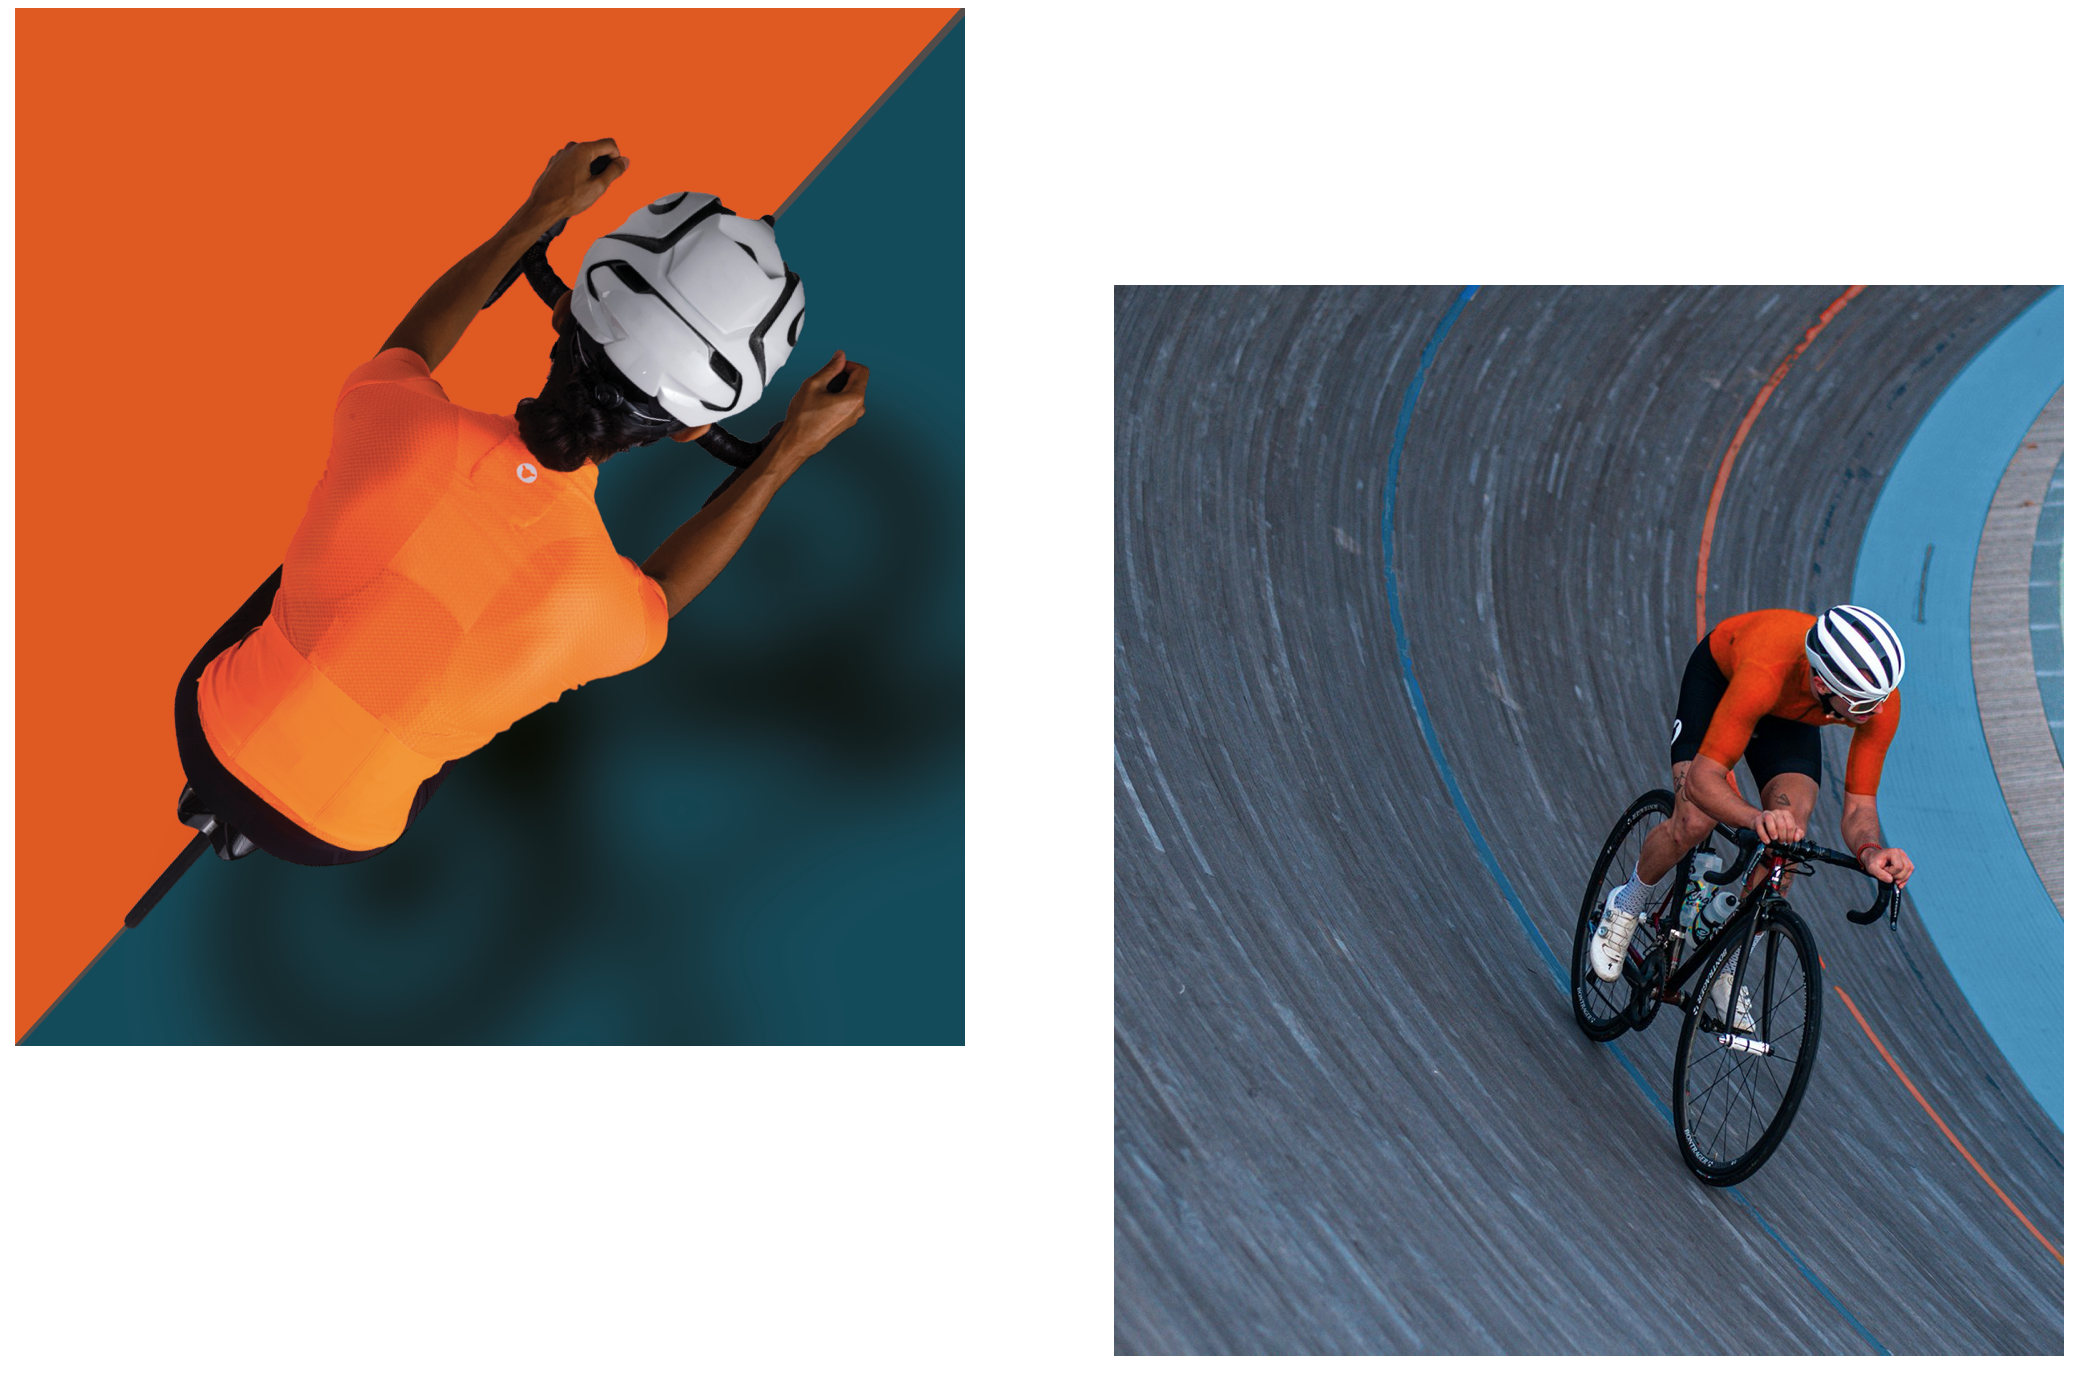 Black Sheep Cycling Racing Aero サイクルジャージ - Orange  |  CYCLISM